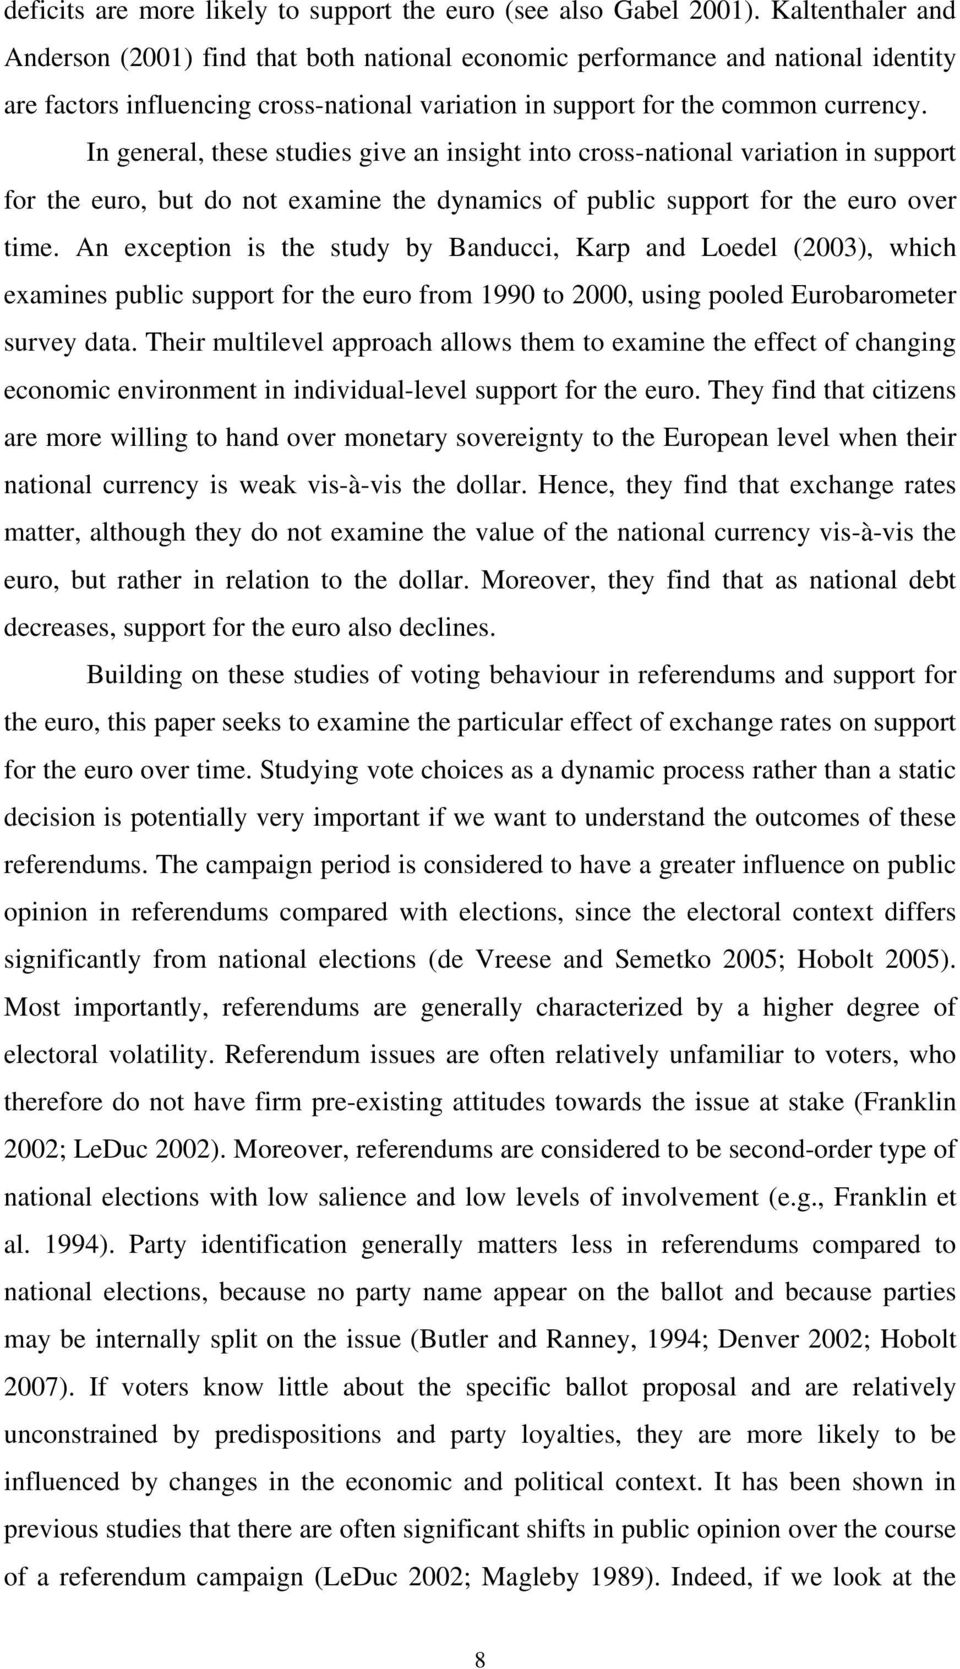 In general, these studies give an insight into cross-national variation in support for the euro, but do not examine the dynamics of public support for the euro over time.